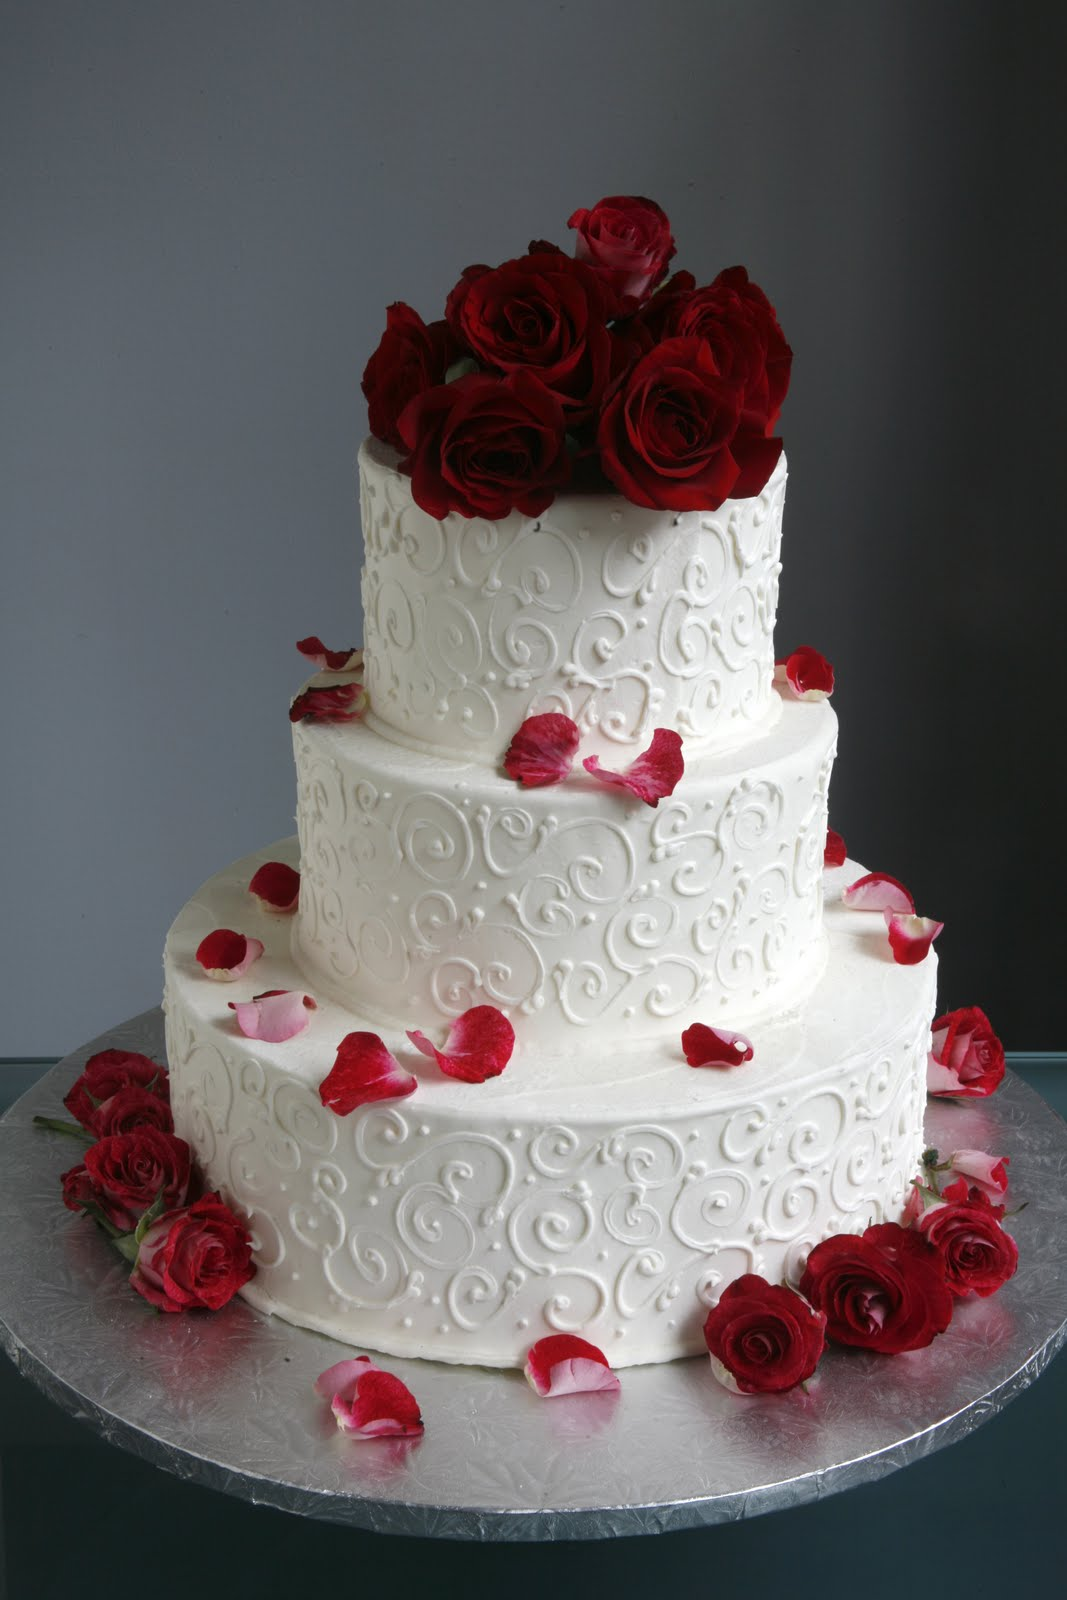 A Simple Cake Wedding Cake with Fresh Flowers From